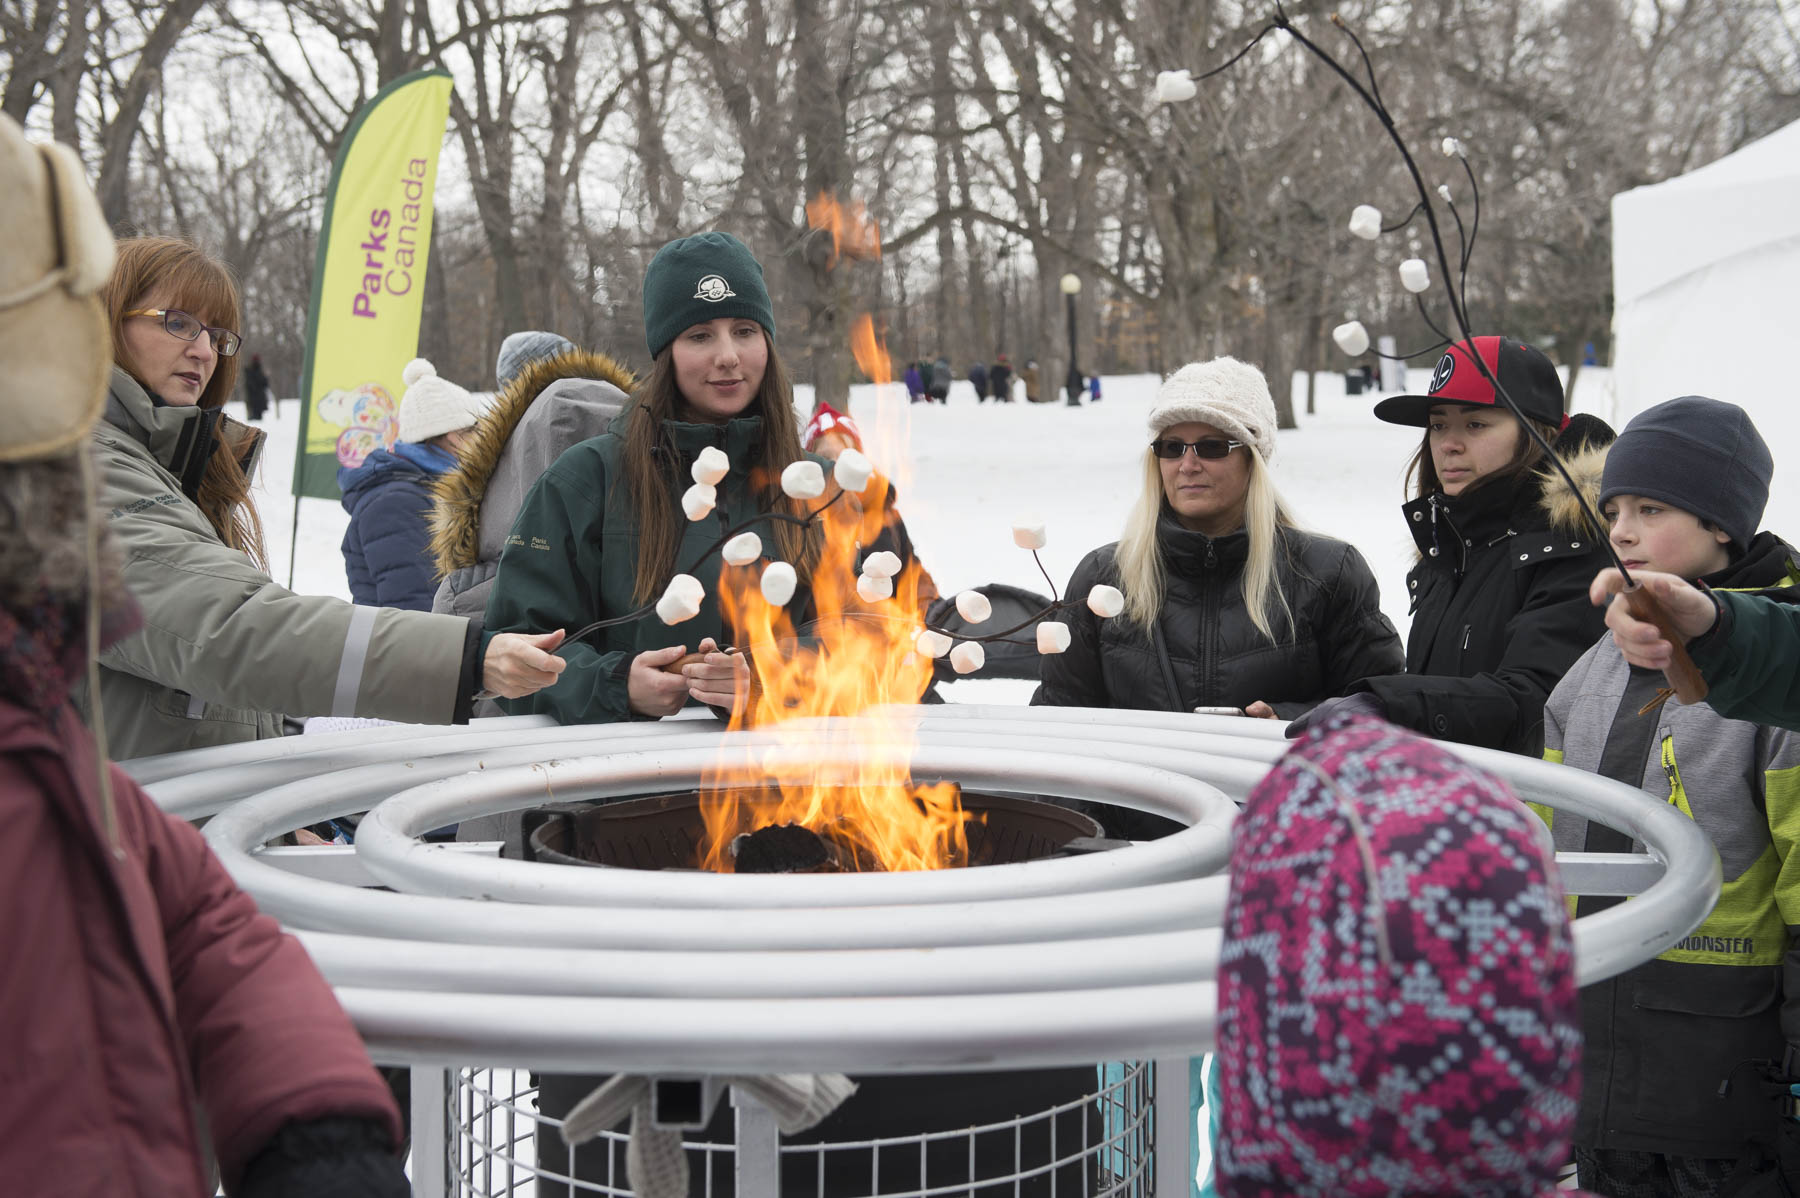 Even if the weather was mild, visitors enjoyed warming up near the fire and eating marshmallows. The activity was offered by Parks Canada.